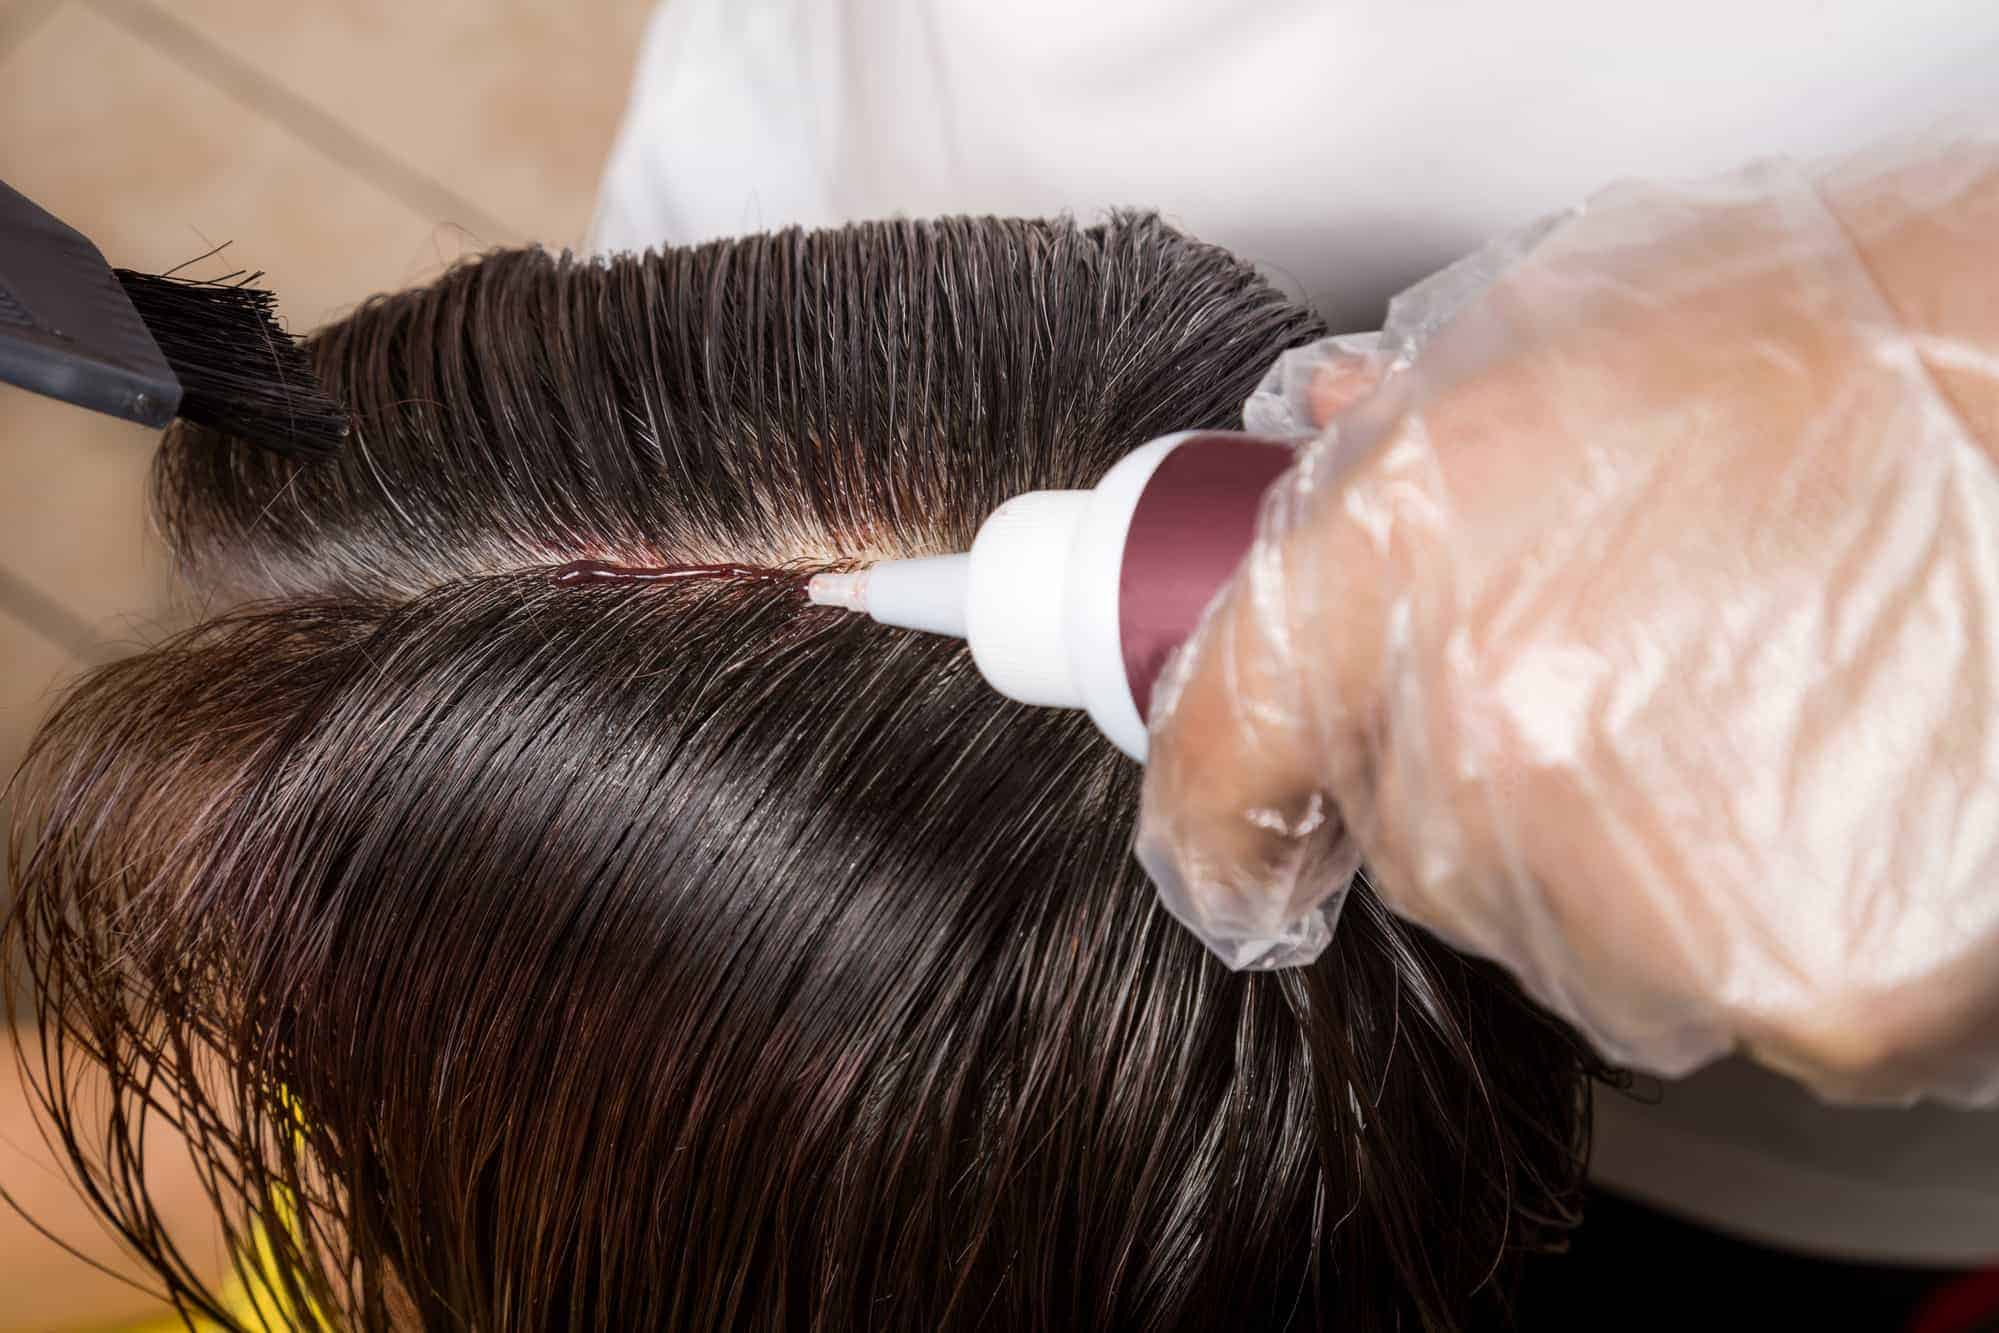 chemical hair color dye onto hair roots